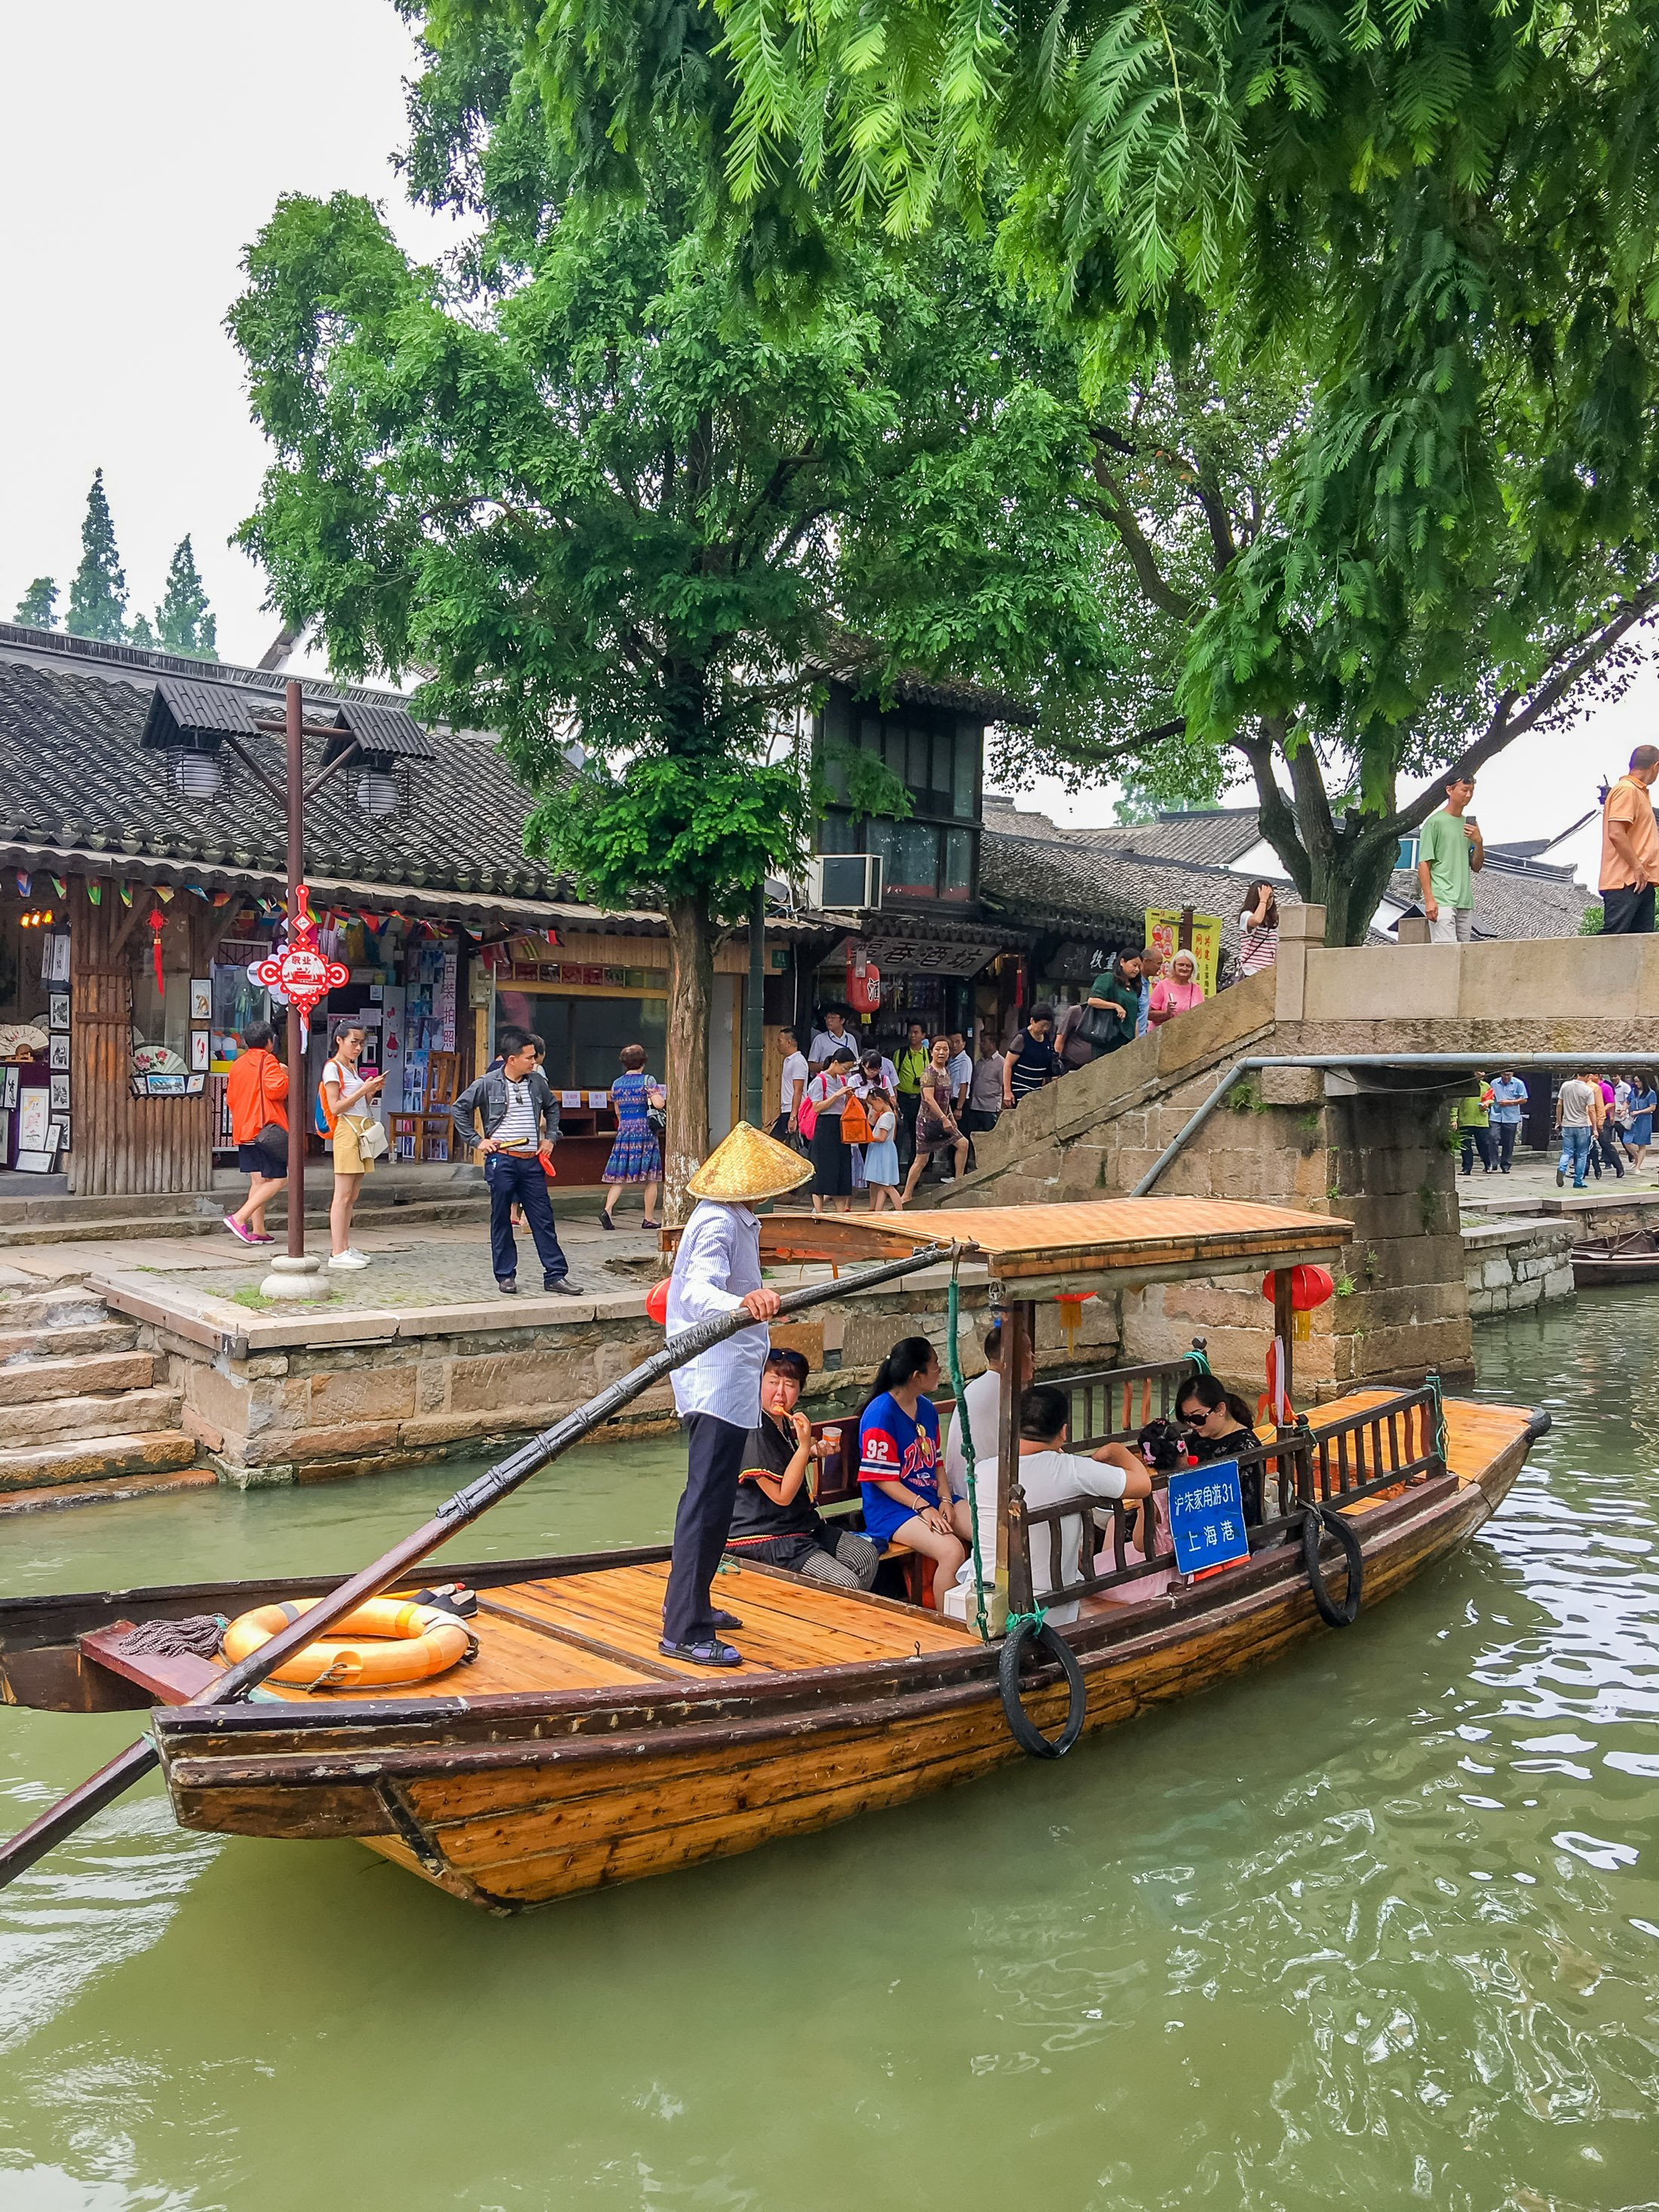 A boat ride at Zhujiajiao, a water town near Shanghai